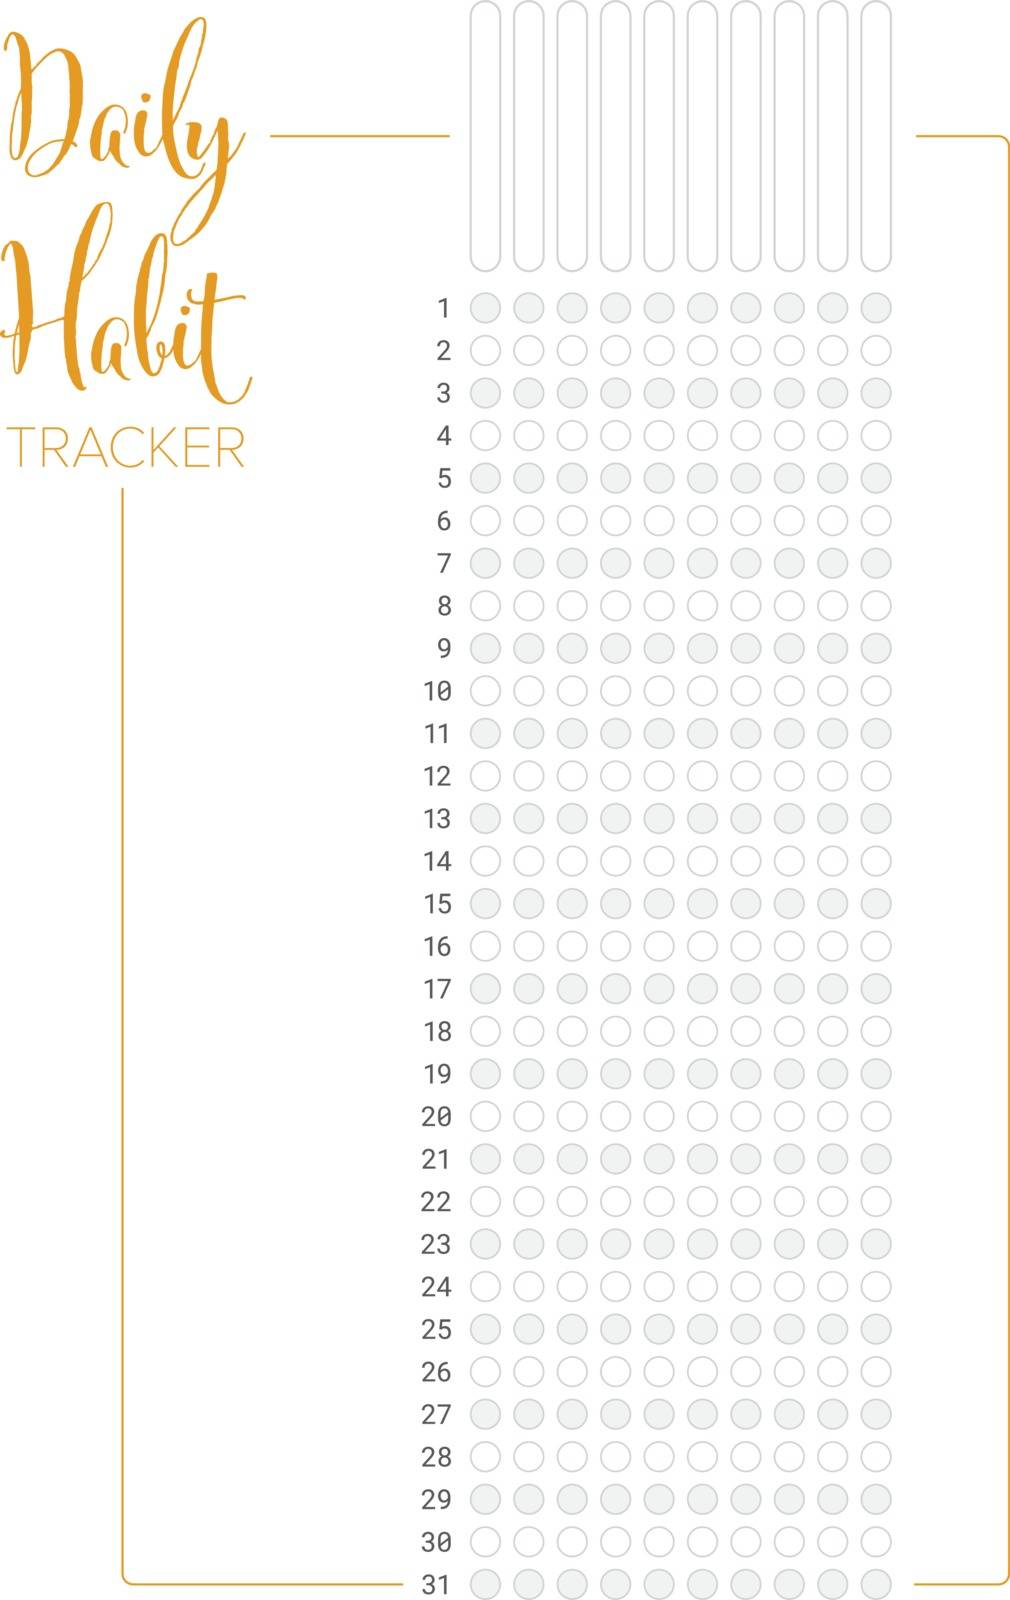 Daily habit tracker template by orson